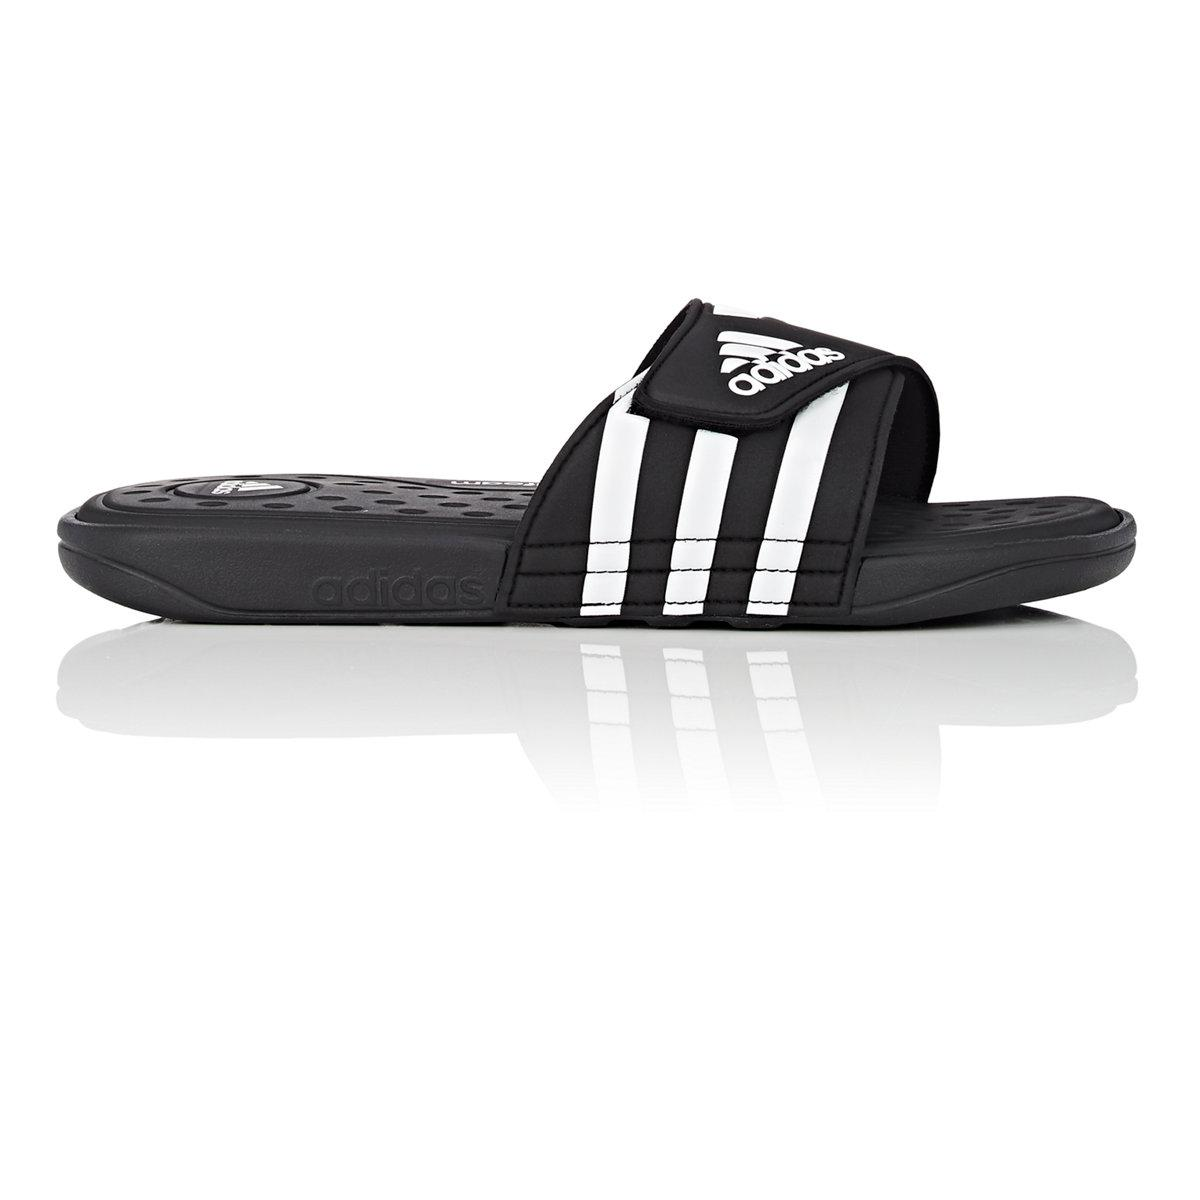 Men's Adidas Adilette Cloudfoam + Link Graphic Slide Sport Slides buy cheap largest supplier outlet brand new unisex cheap price for sale Yj9ZkqO